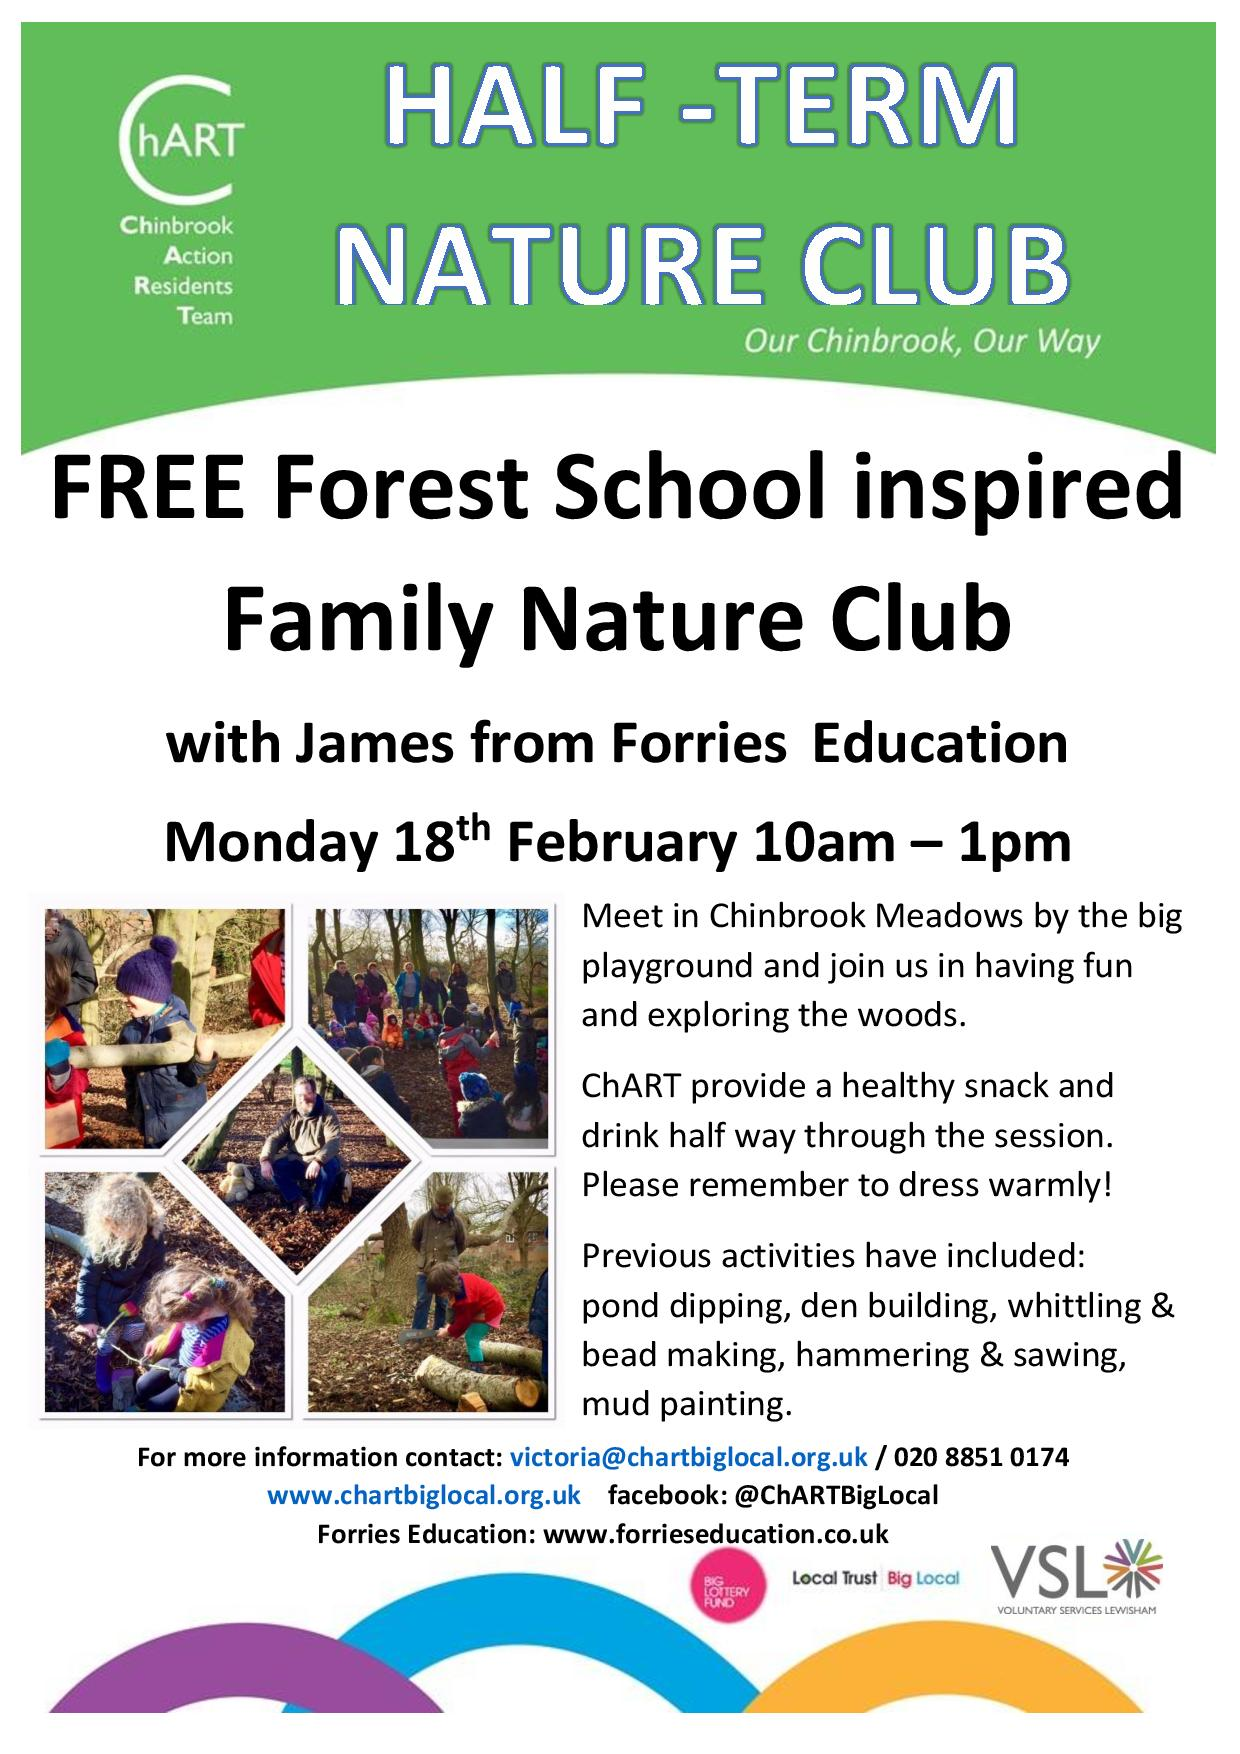 ChART Nature Club Flyer Monday 18th February 10am to 1pm Chinbrook Meadows